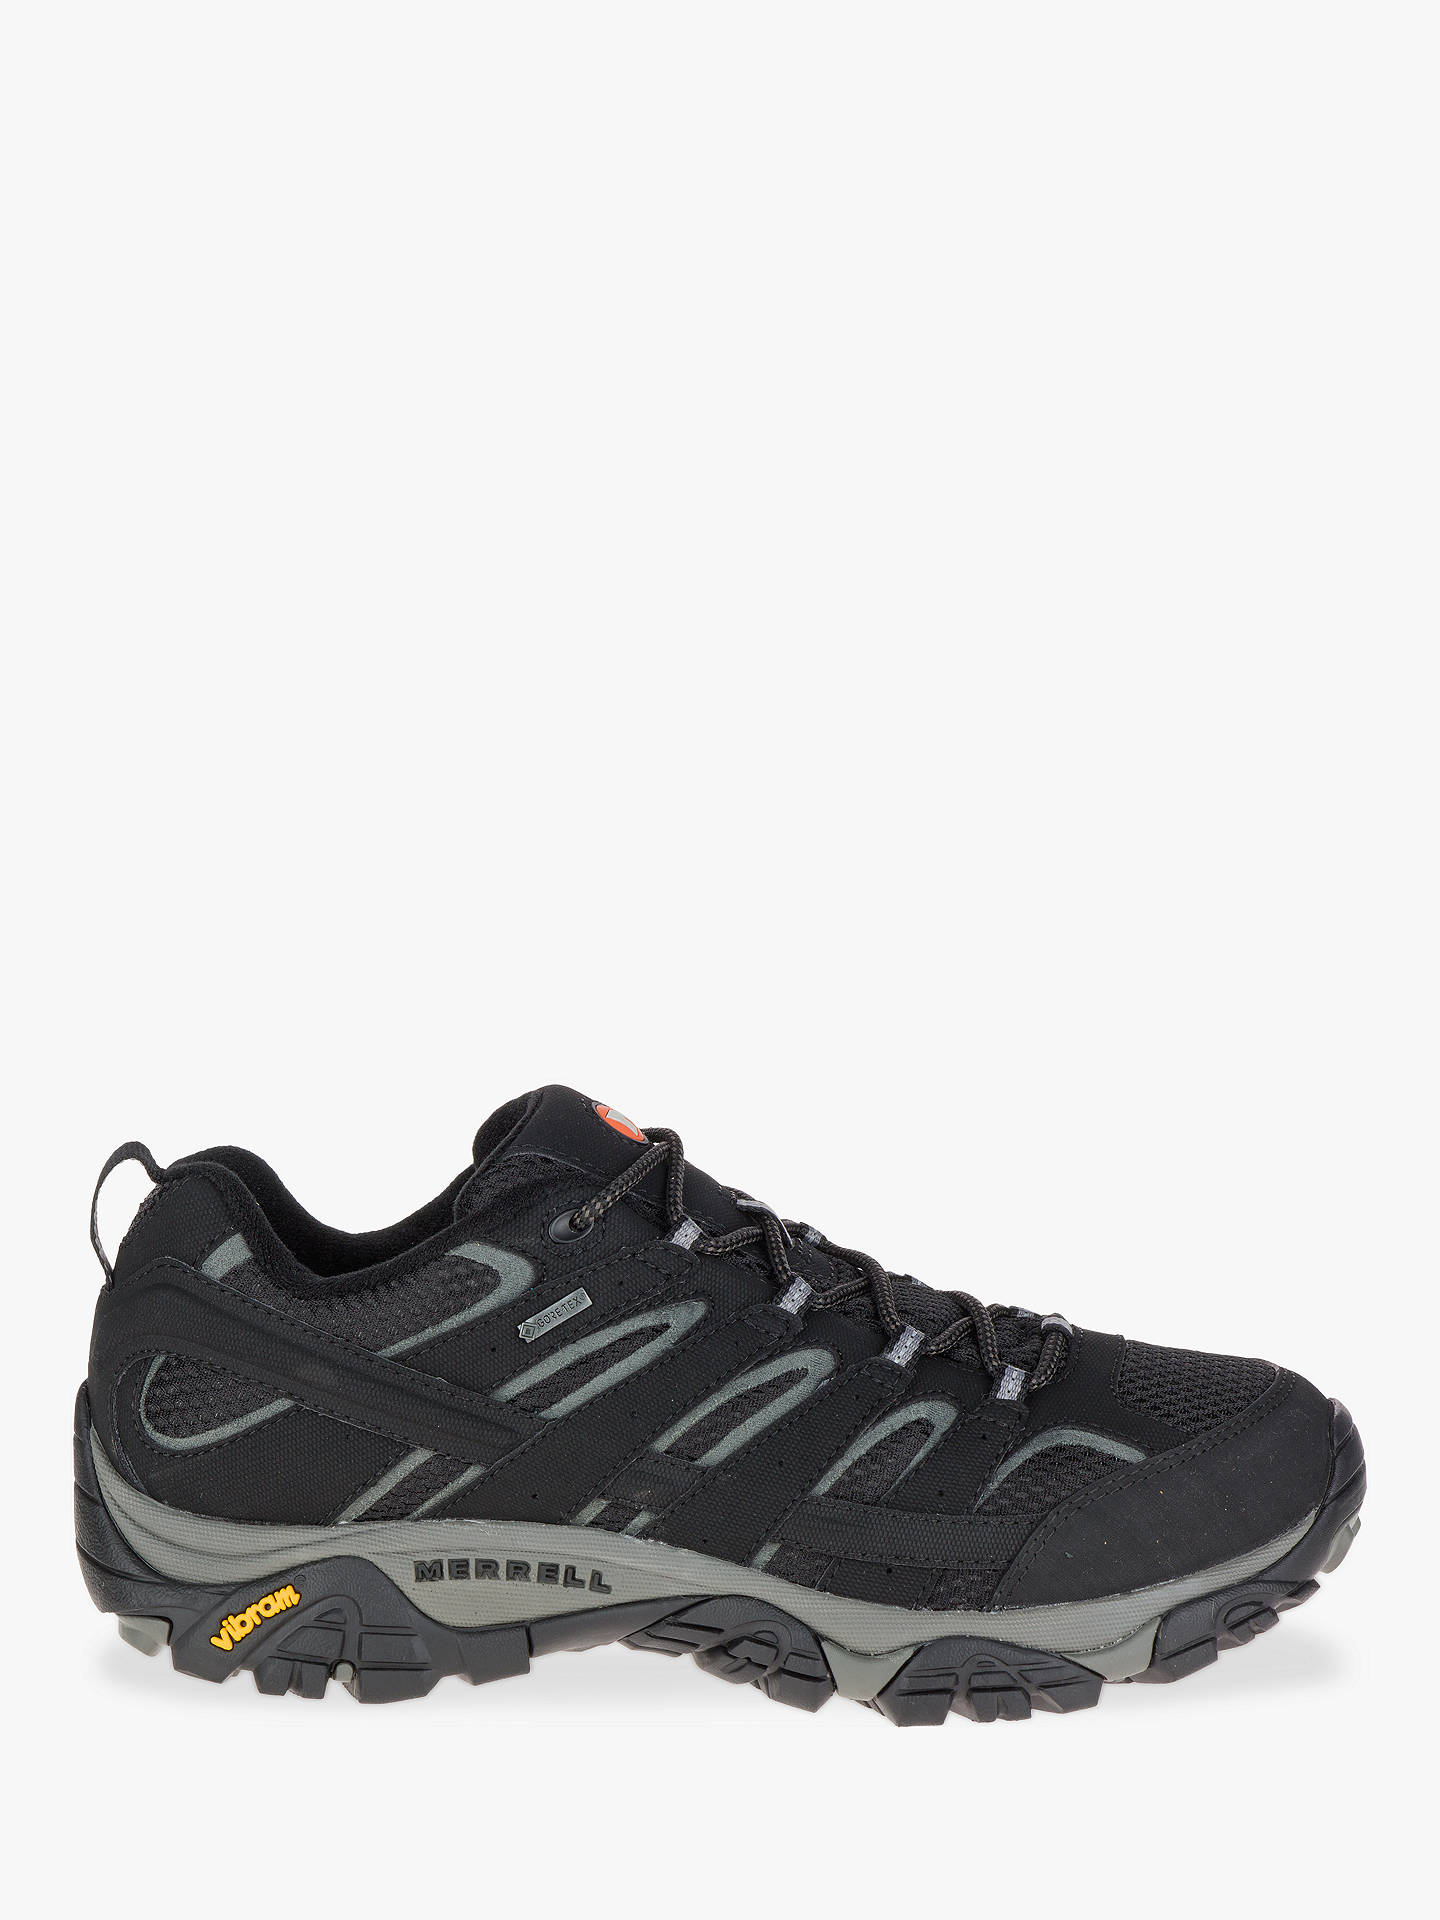 2b172b31 Merrell MOAB 2 GORE-TEX Men's Hiking Shoes, Black